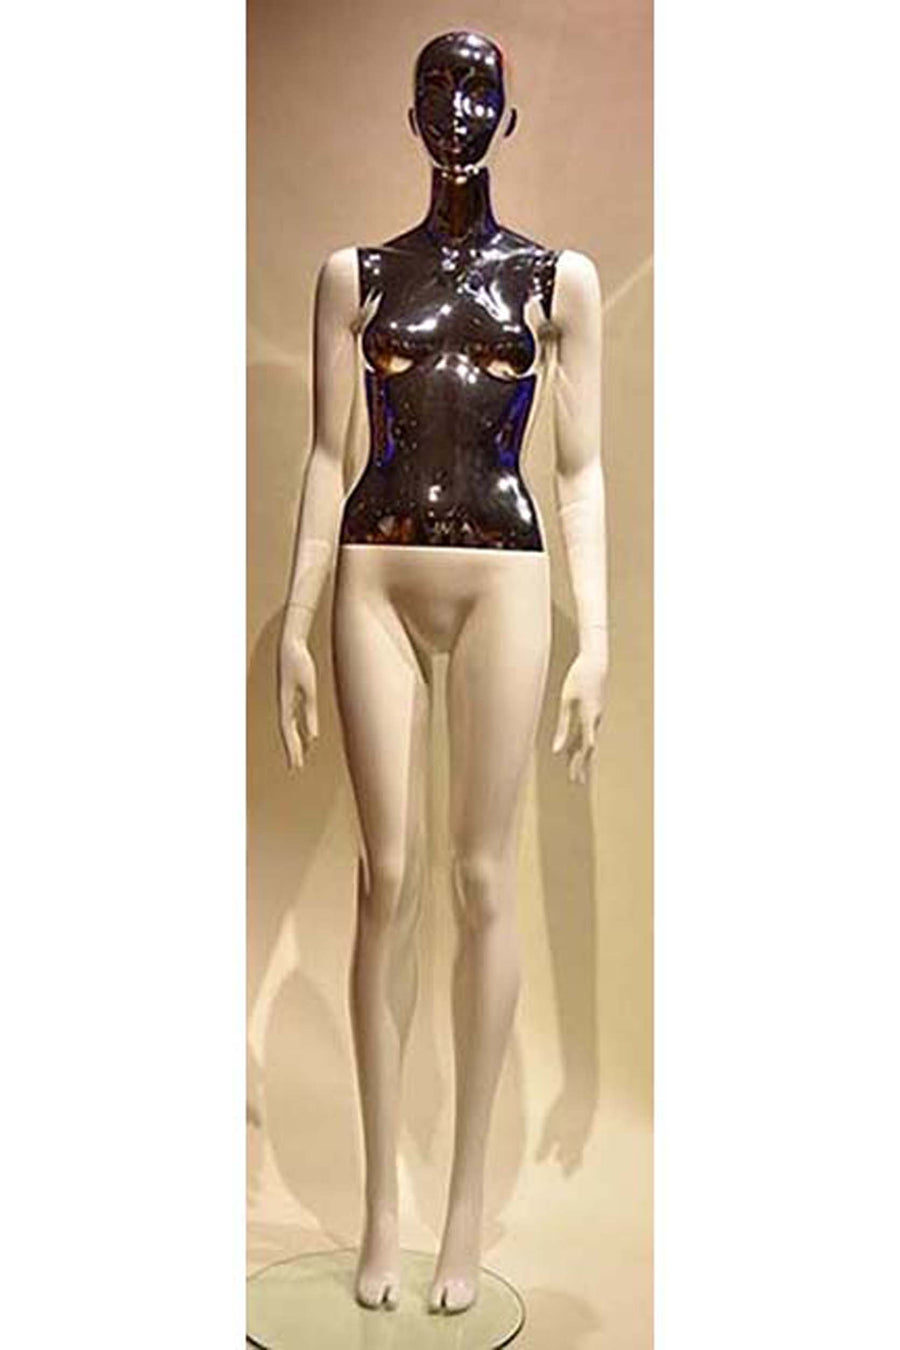 female mannequin with glossy white arms and legs, silver chrome torso and head, arms at sides, and legs together